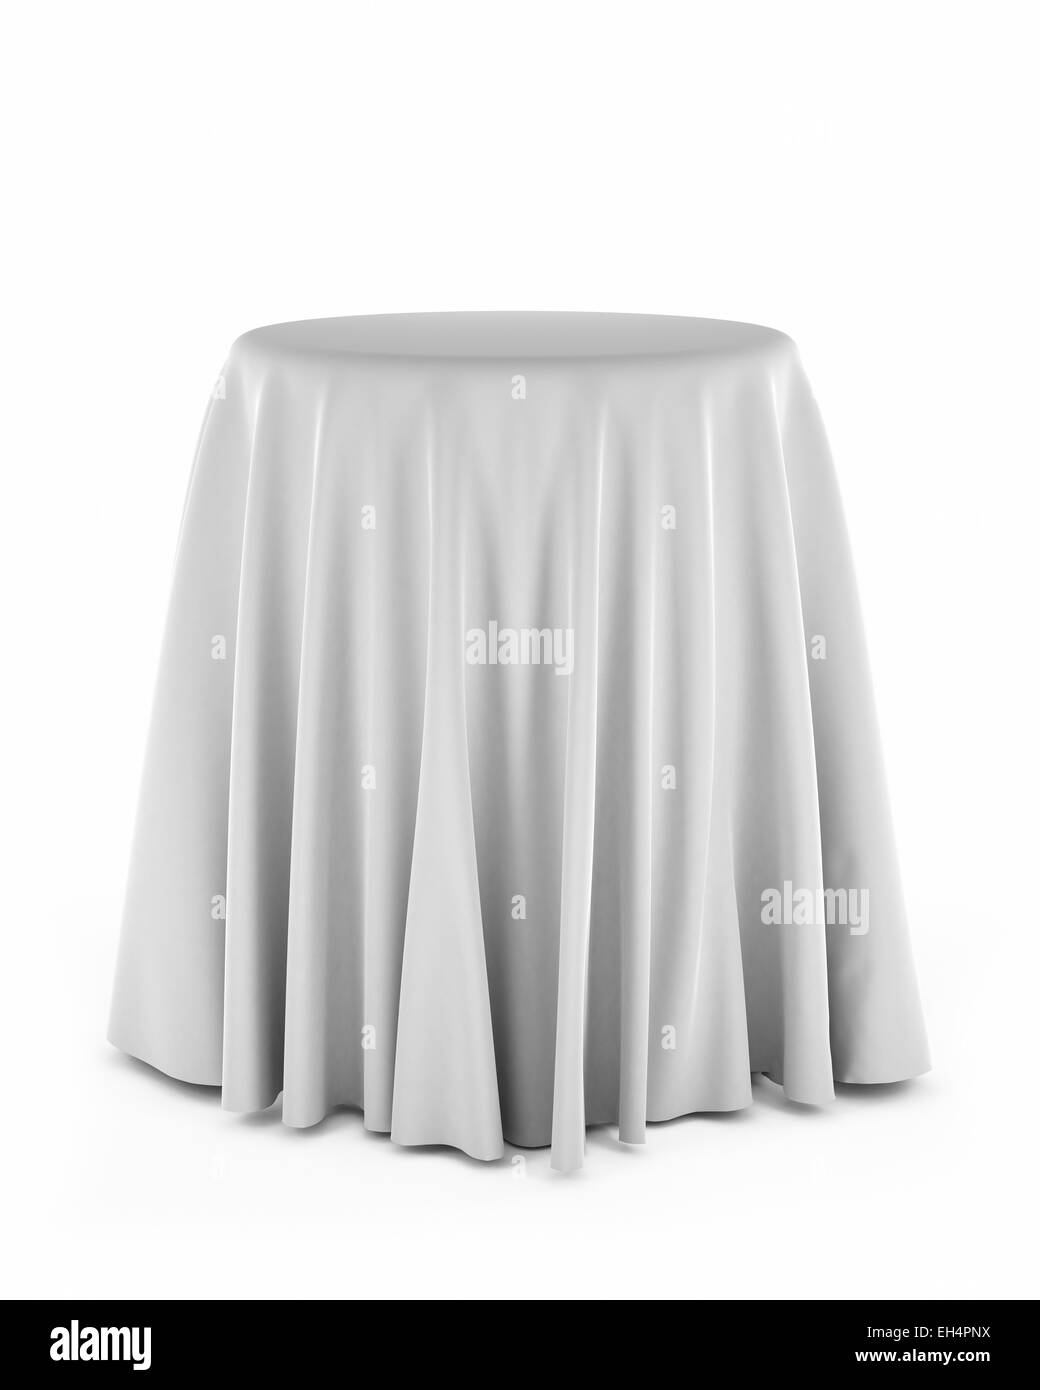 Round presentation pedestal covered with a white cloth - Stock Image